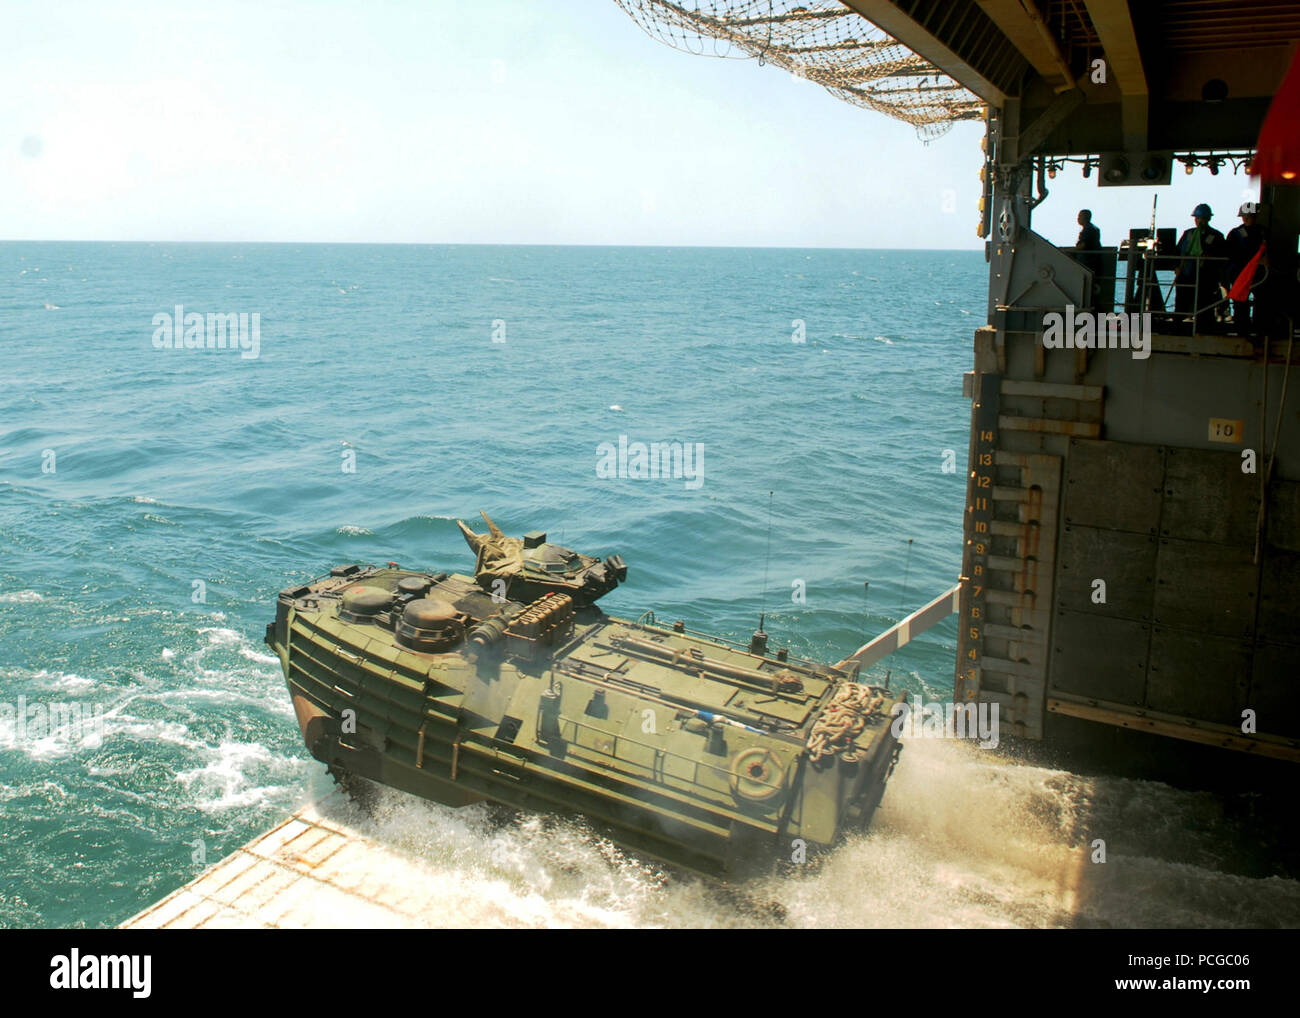 SEA (Oct. 16, 2009) An amphibious assault vehicle from to the 11th Marine Expeditionary Unit (11th MEU) debarks the well deck of the amphibious dock landing ship USS Rushmore (LSD 47) and heads ashore to Indonesia to support Marine Exercise (MAREX) 09. MAREX is a multilateral training exercise designed to enhance interoperability and communication between the U.S. and Indonesia militaries. Rushmore is part of the Bonhomme Richard Amphibious Ready Group transiting the U.S. 7th Fleet area of responsibility. Stock Photo